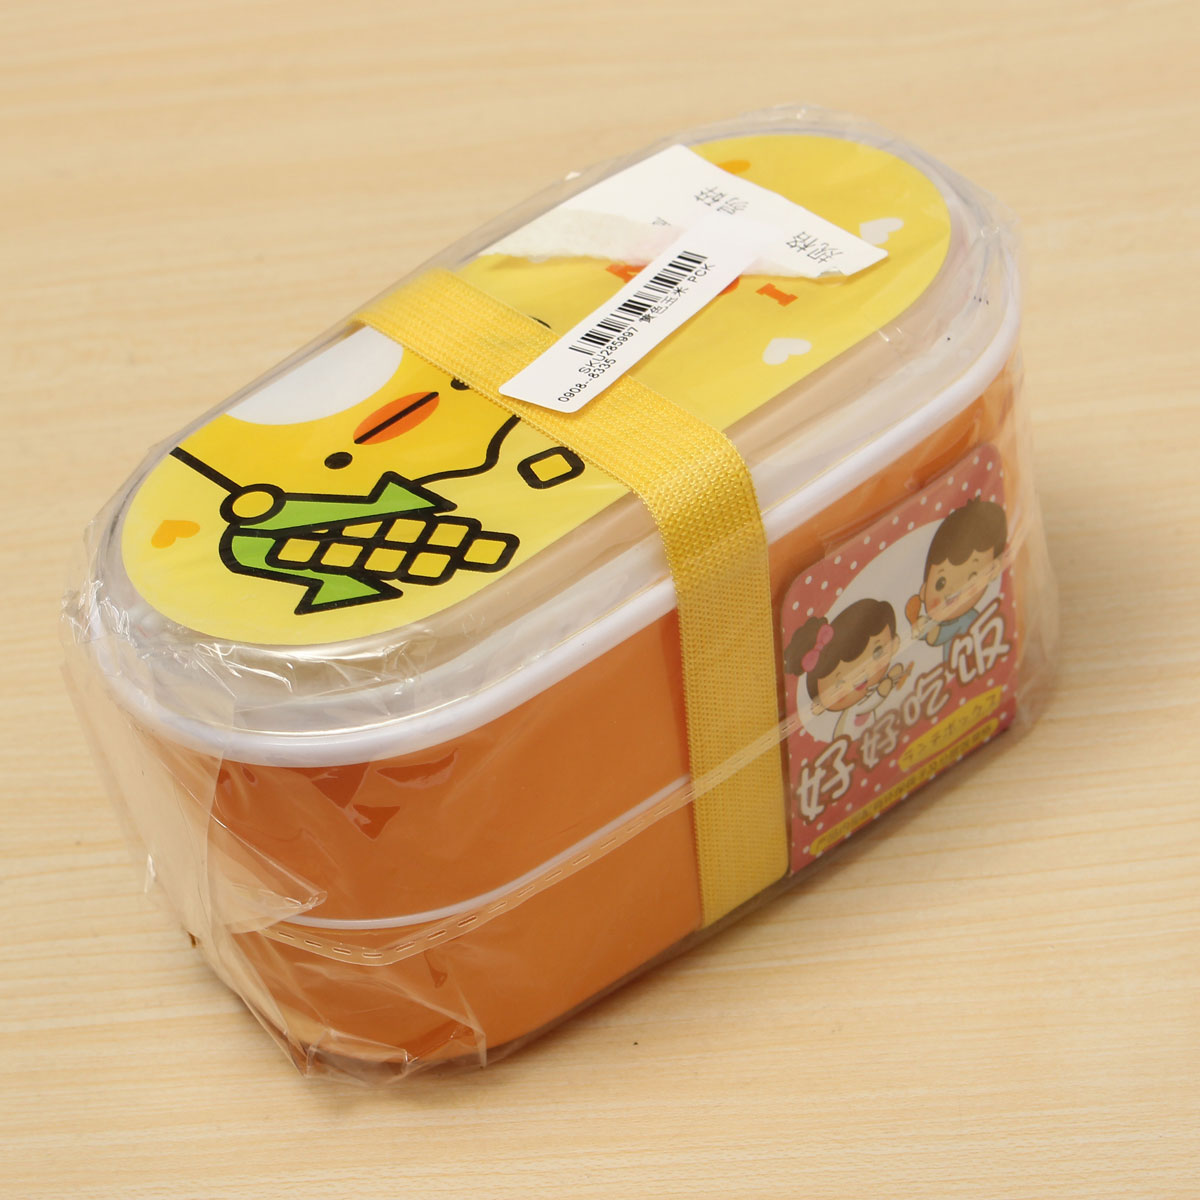 student cartoon lunch box food container storage portable bento box chopstick. Black Bedroom Furniture Sets. Home Design Ideas